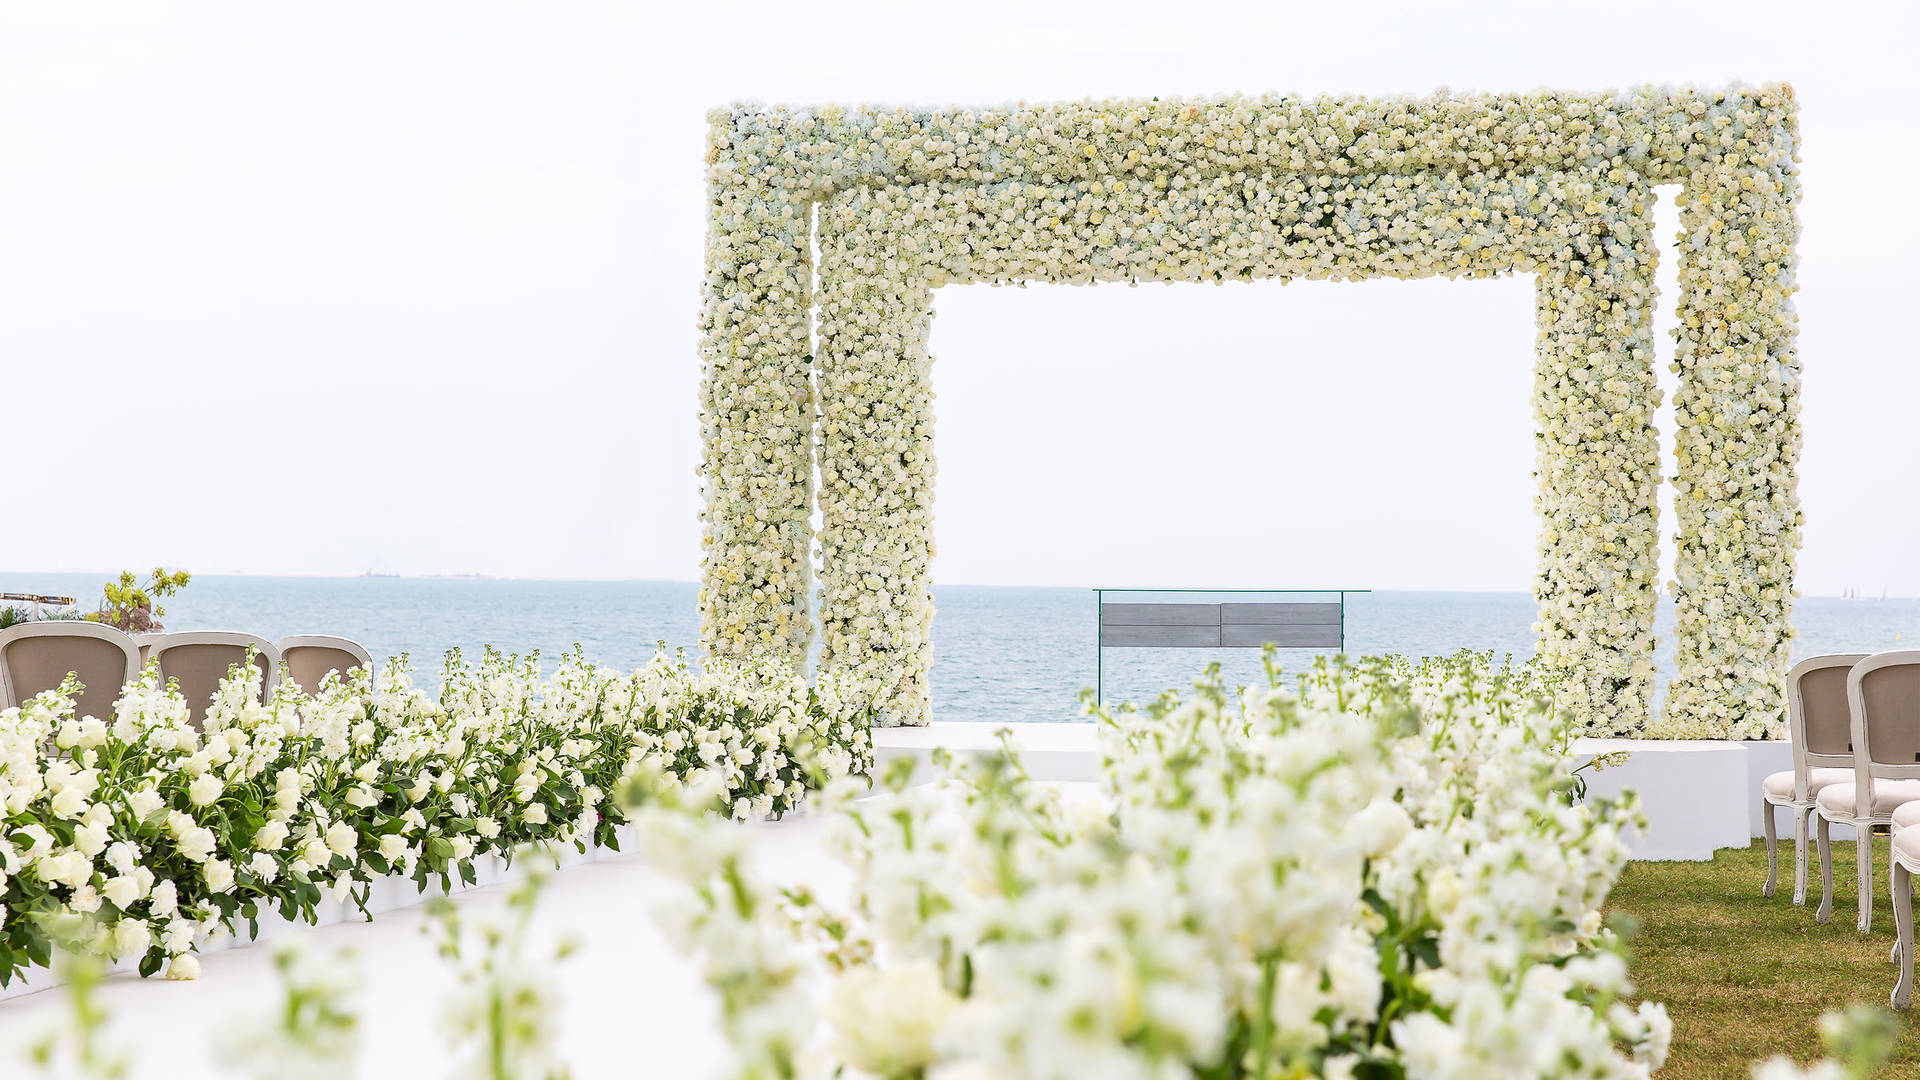 Burj Al Arab Jumeirah Palm Garden Wedding